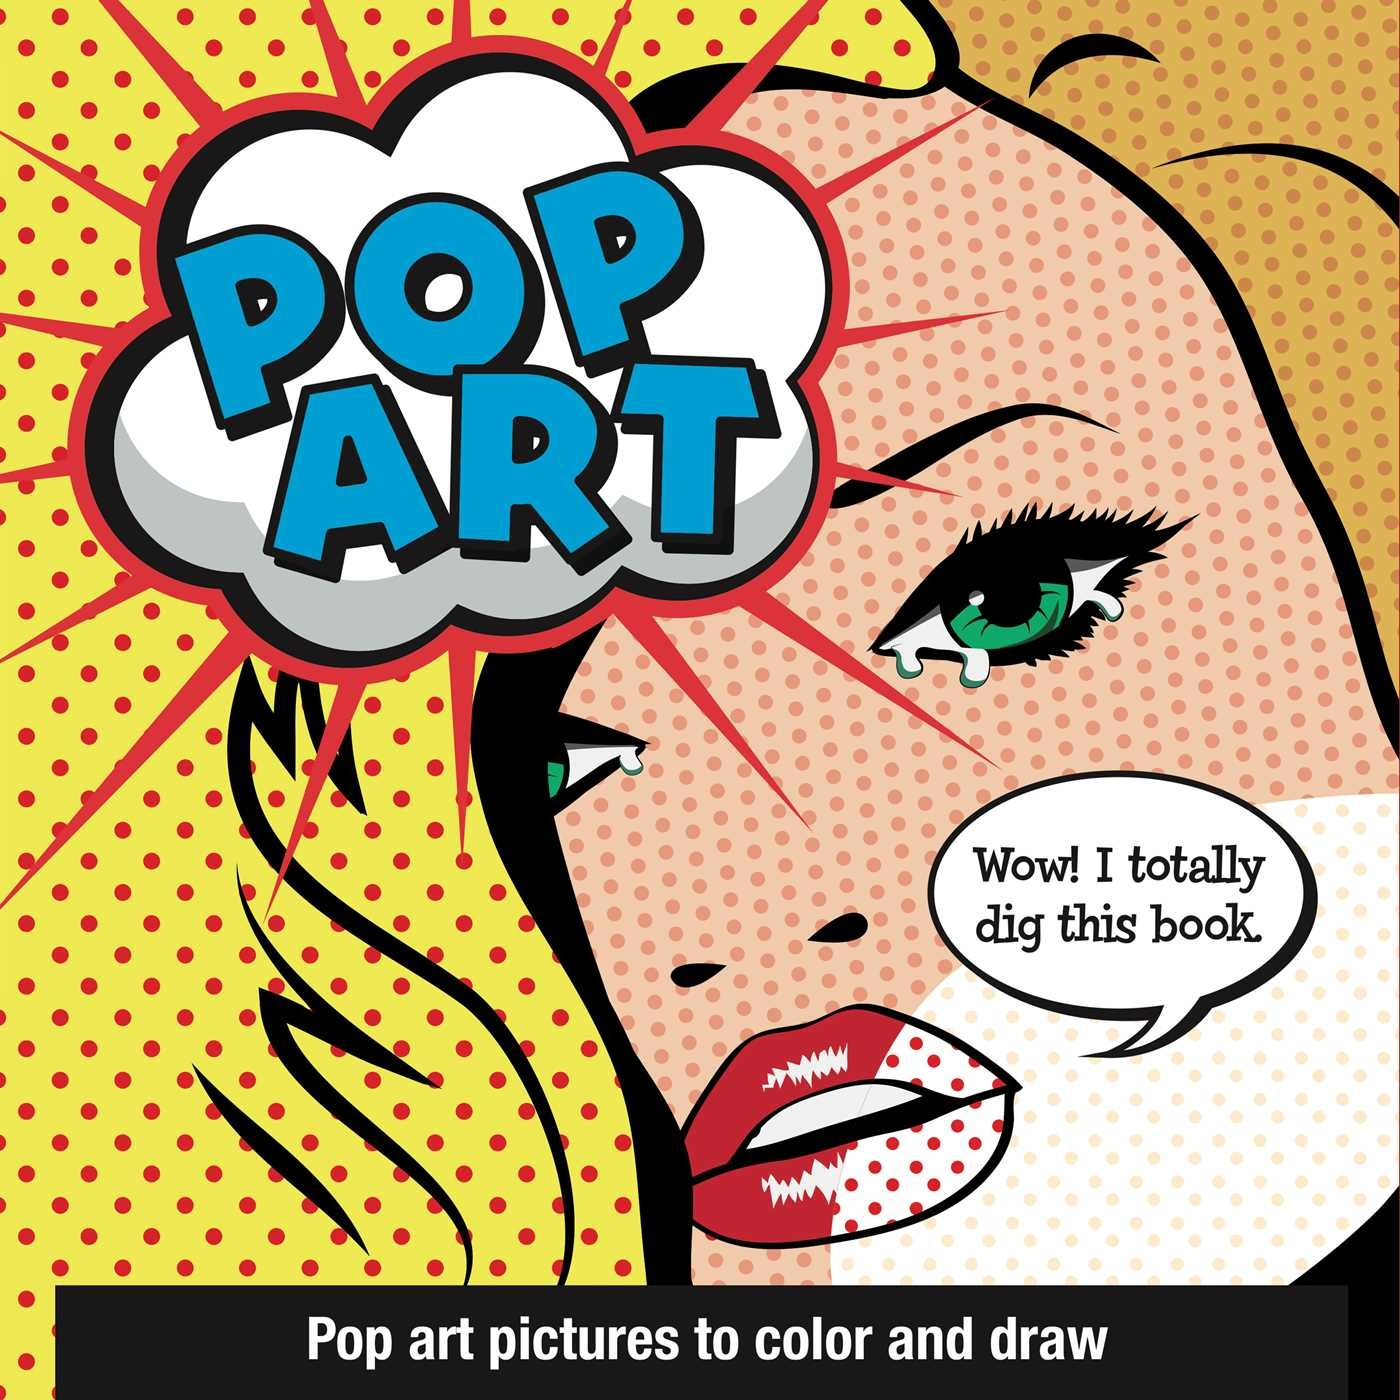 How to draw pop art on a computer in the social network vkontakte or on a computer if it does not install sai and I am afraid of underpinning 79